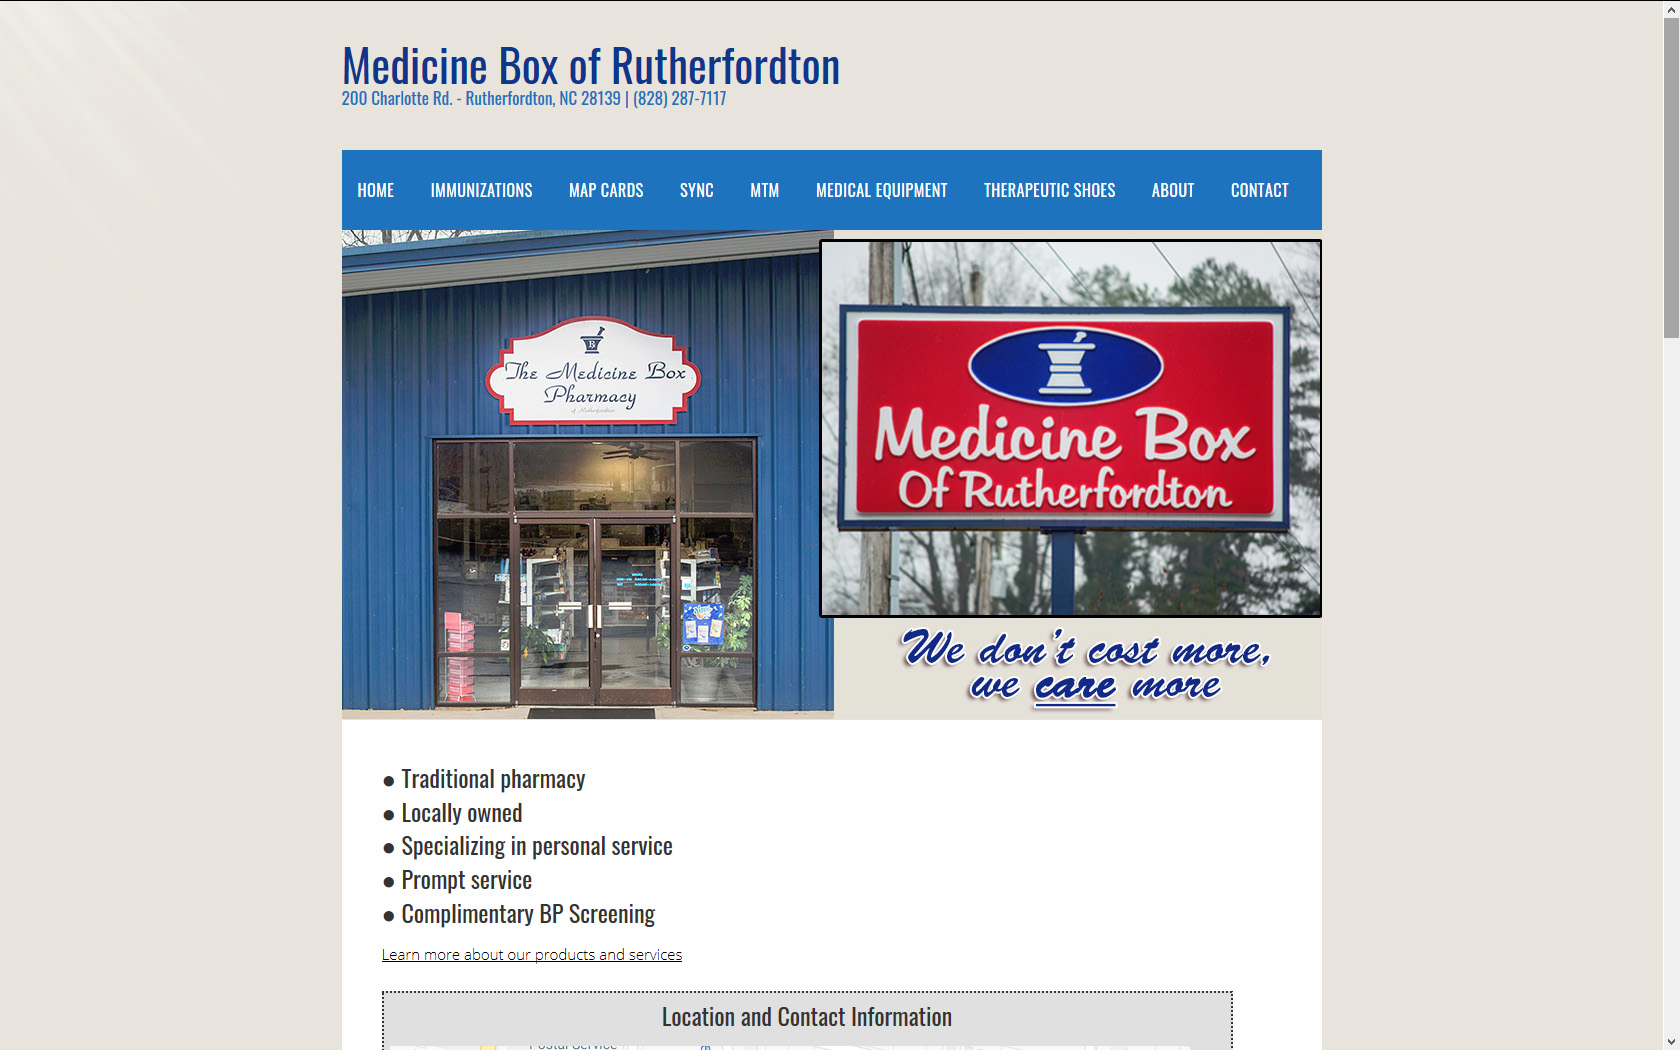 Medicine Box of Rutherfordton